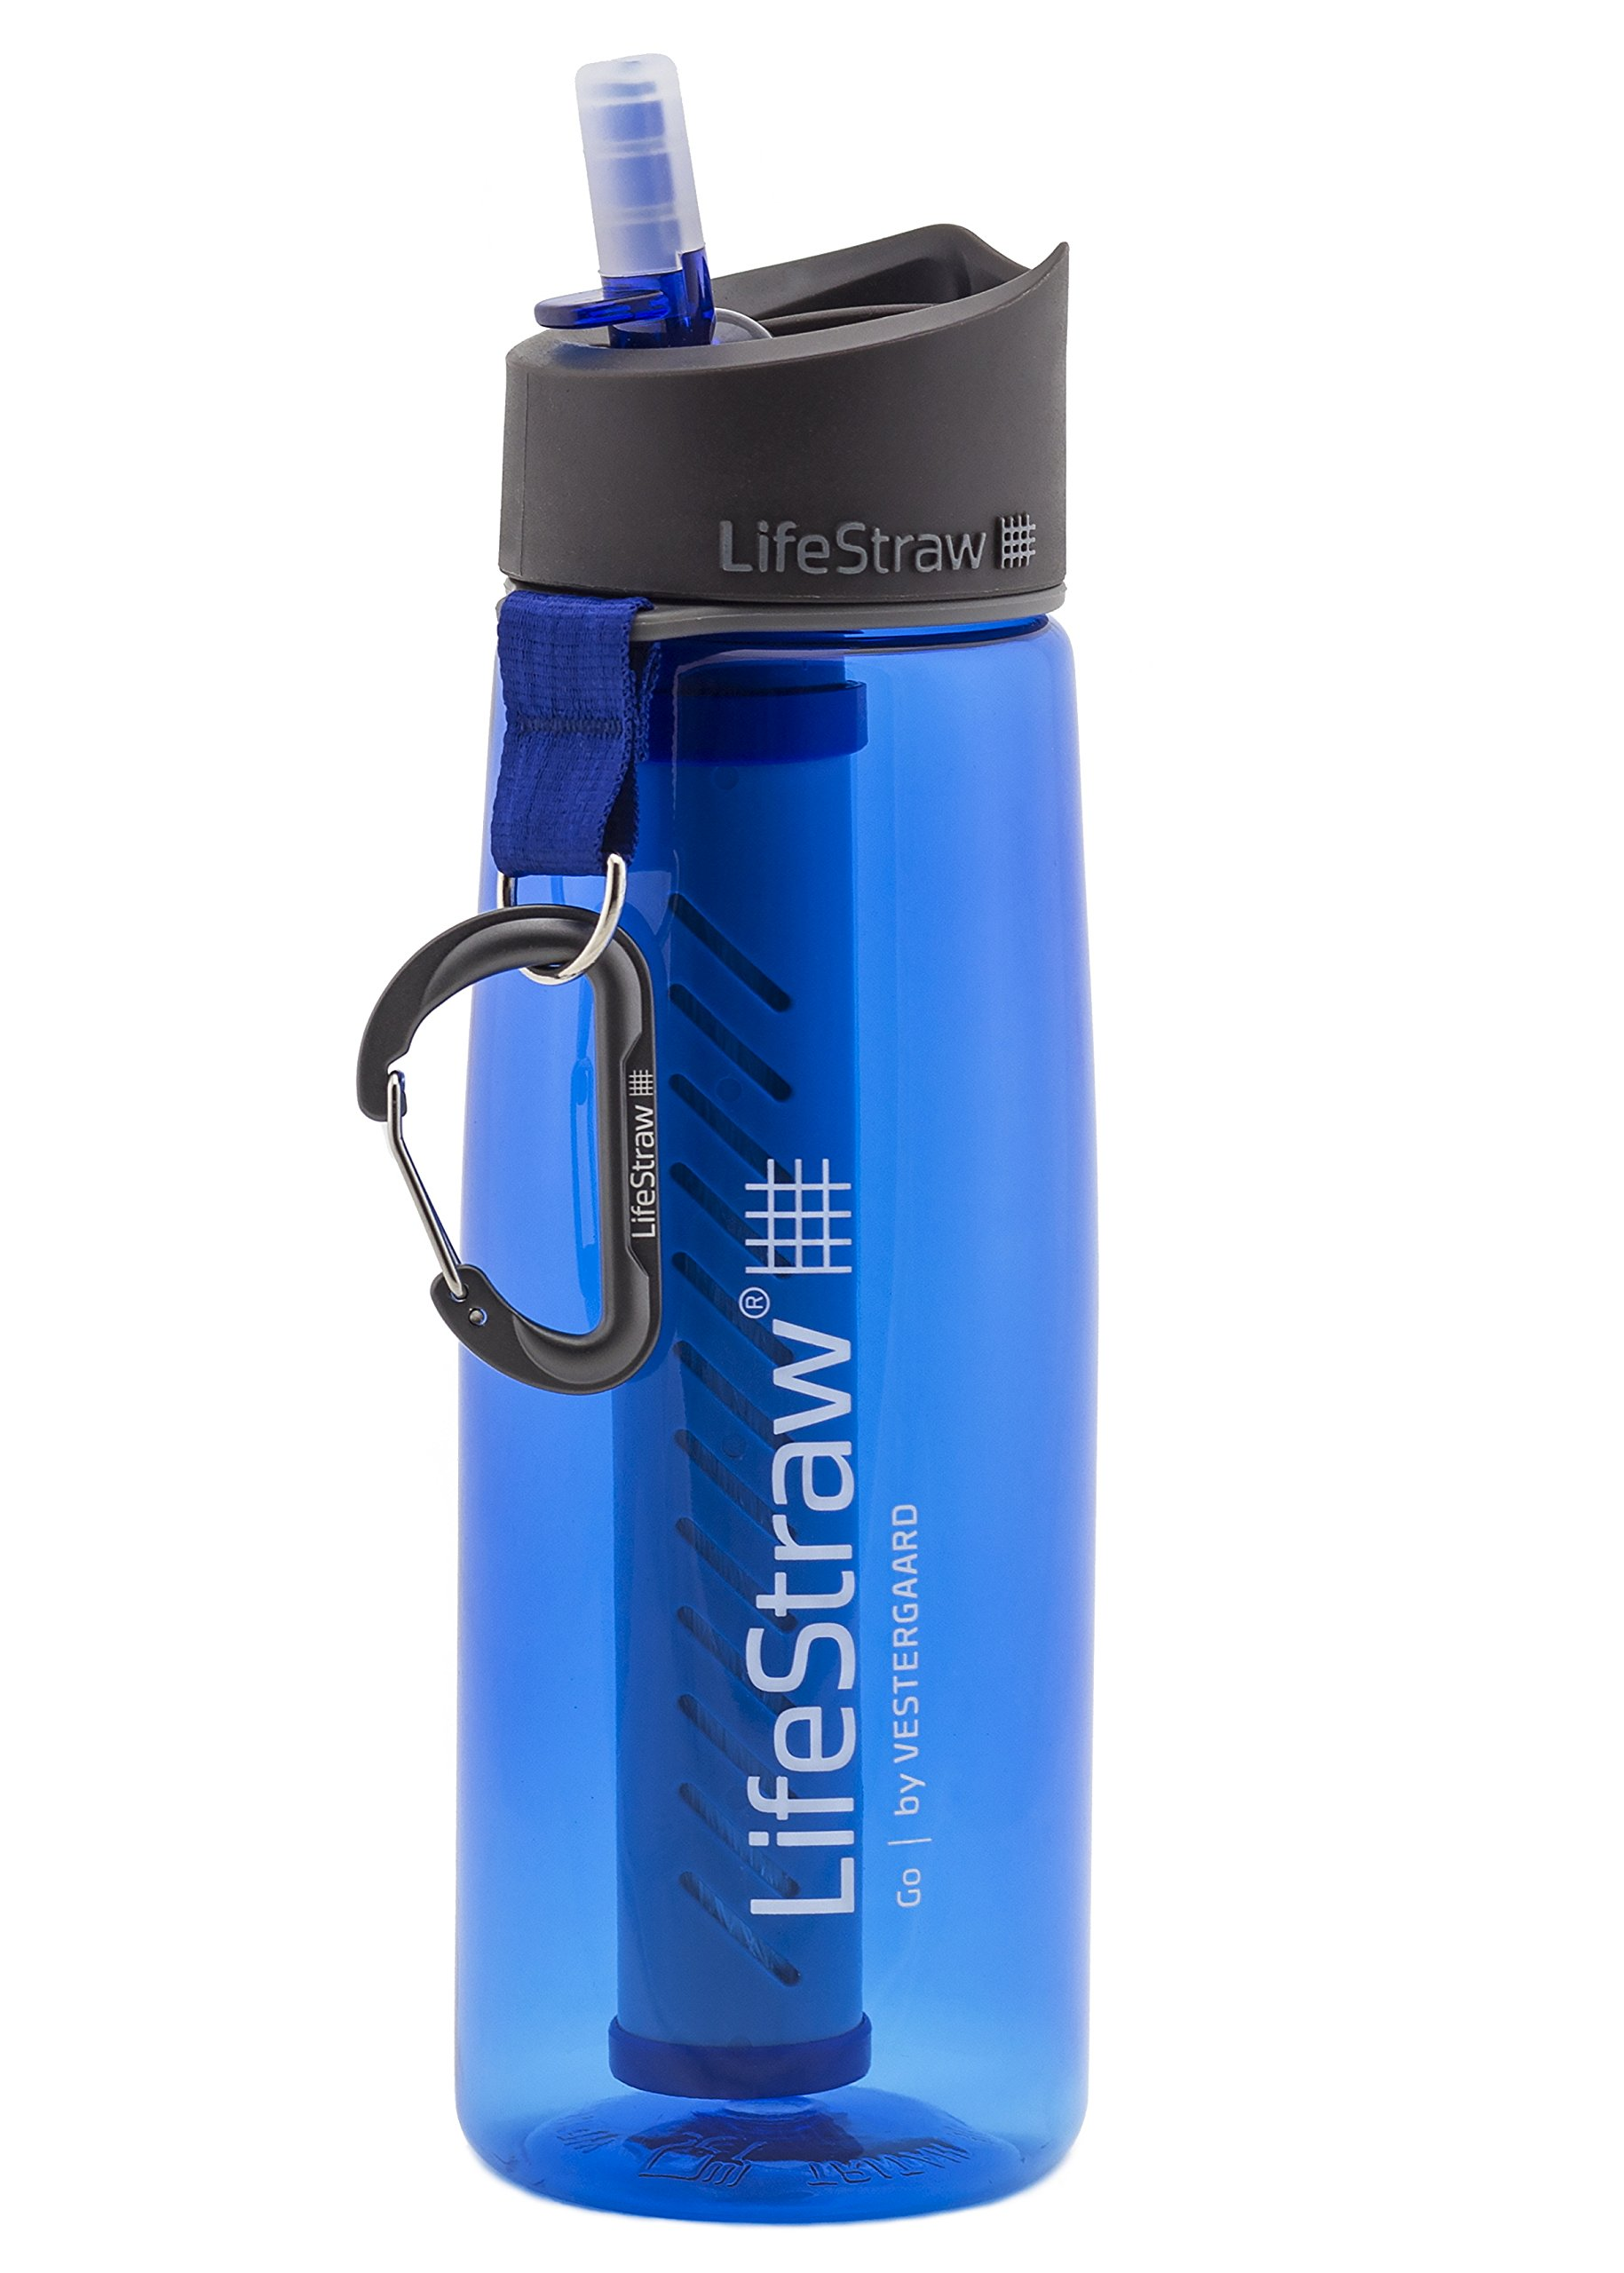 LifeStraw Go Water Filter Bottle with 2-Stage Integrated Filter Straw for Hiking, Backpacking, and Travel, Blue by LifeStraw